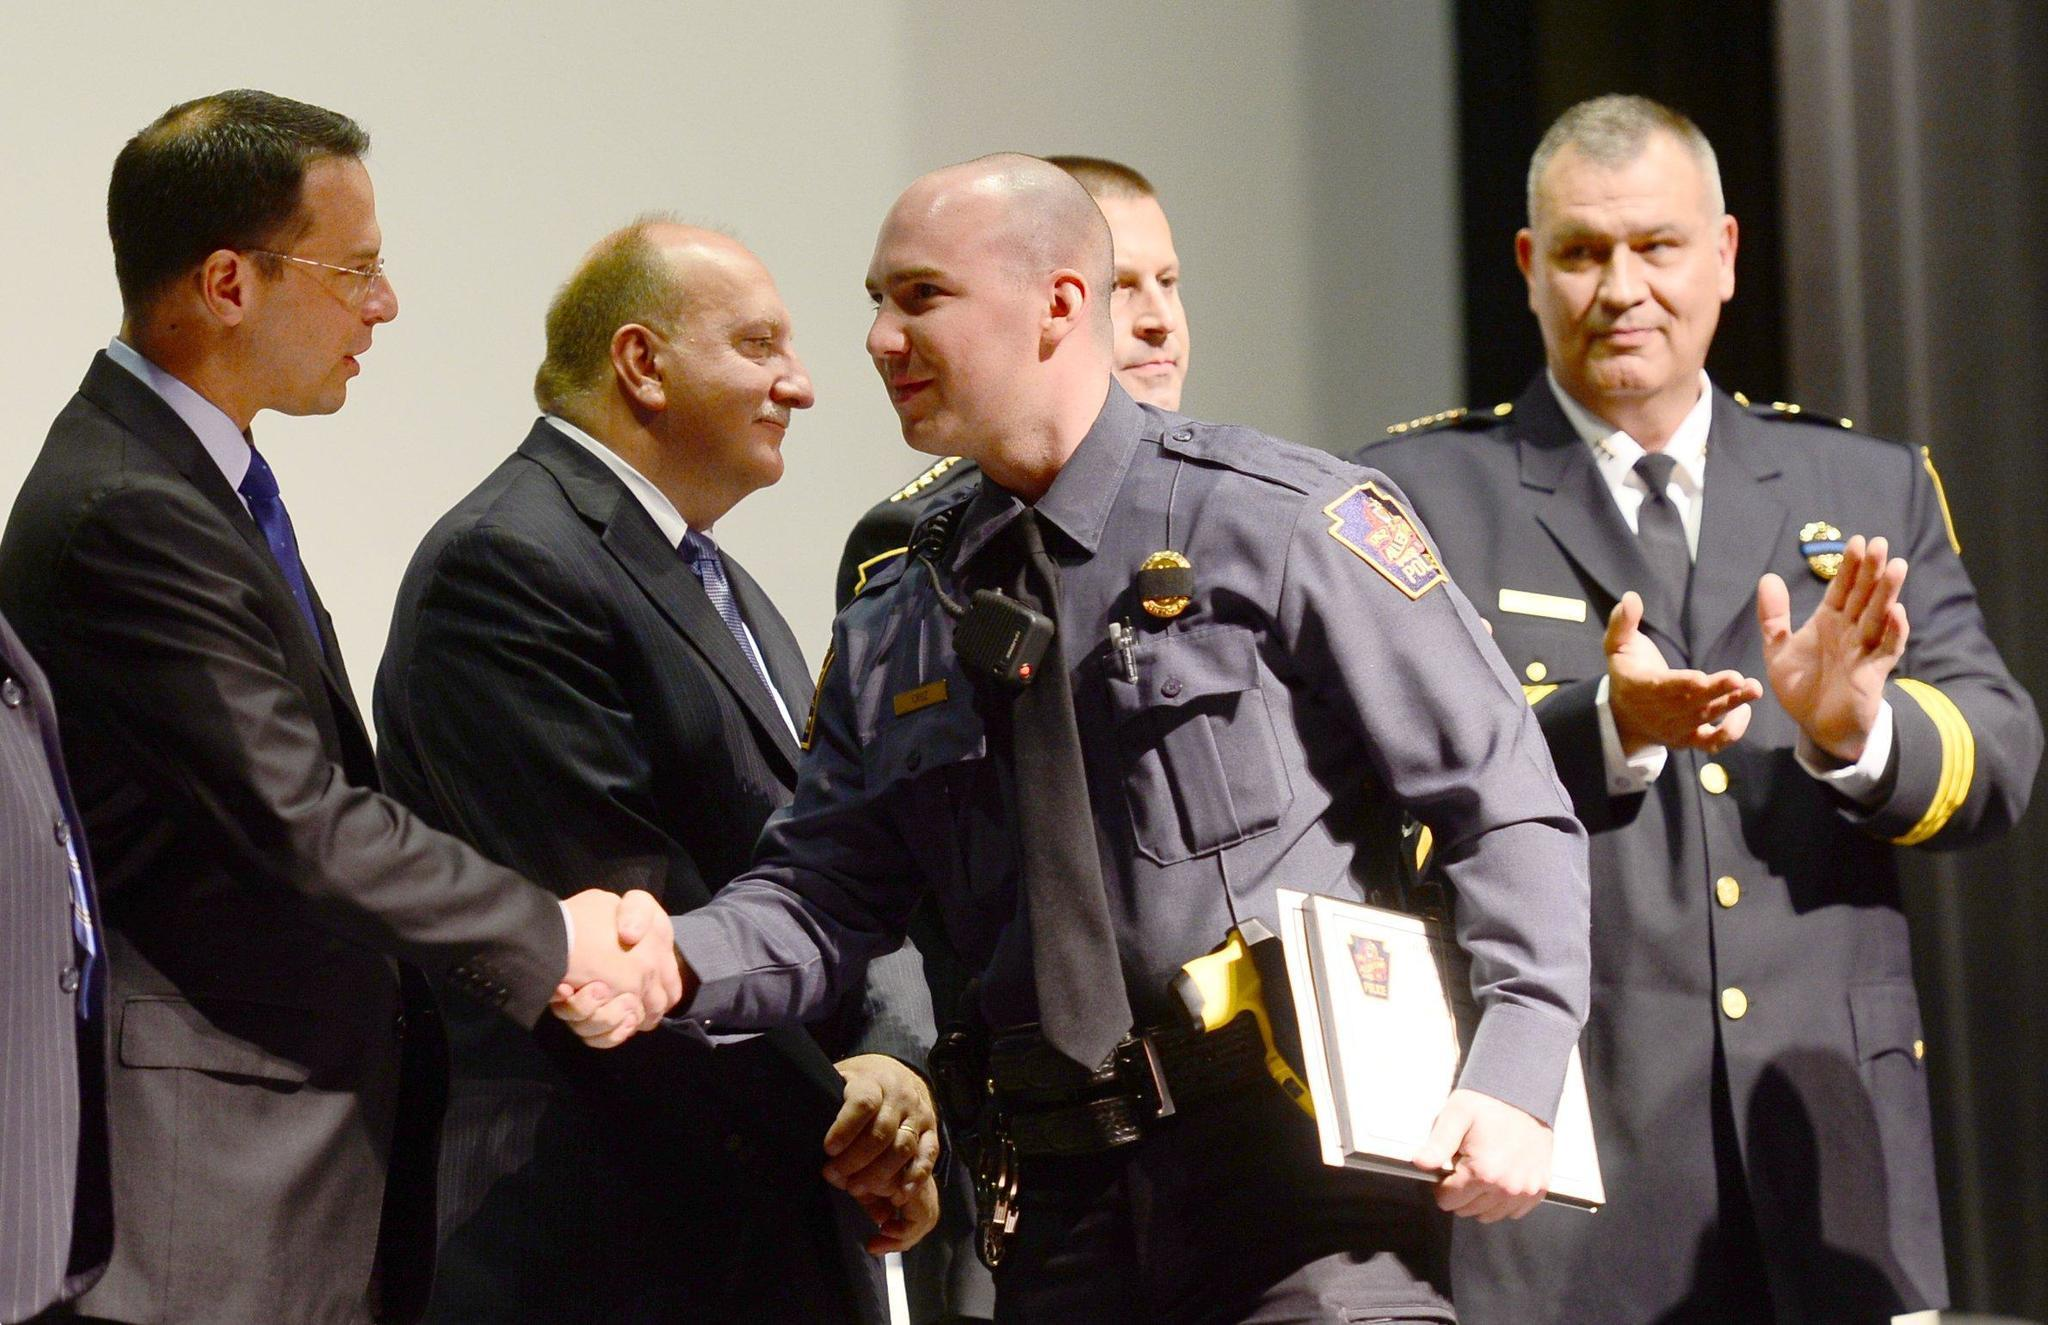 Dozens of officers honored for bravery, heroism during ...